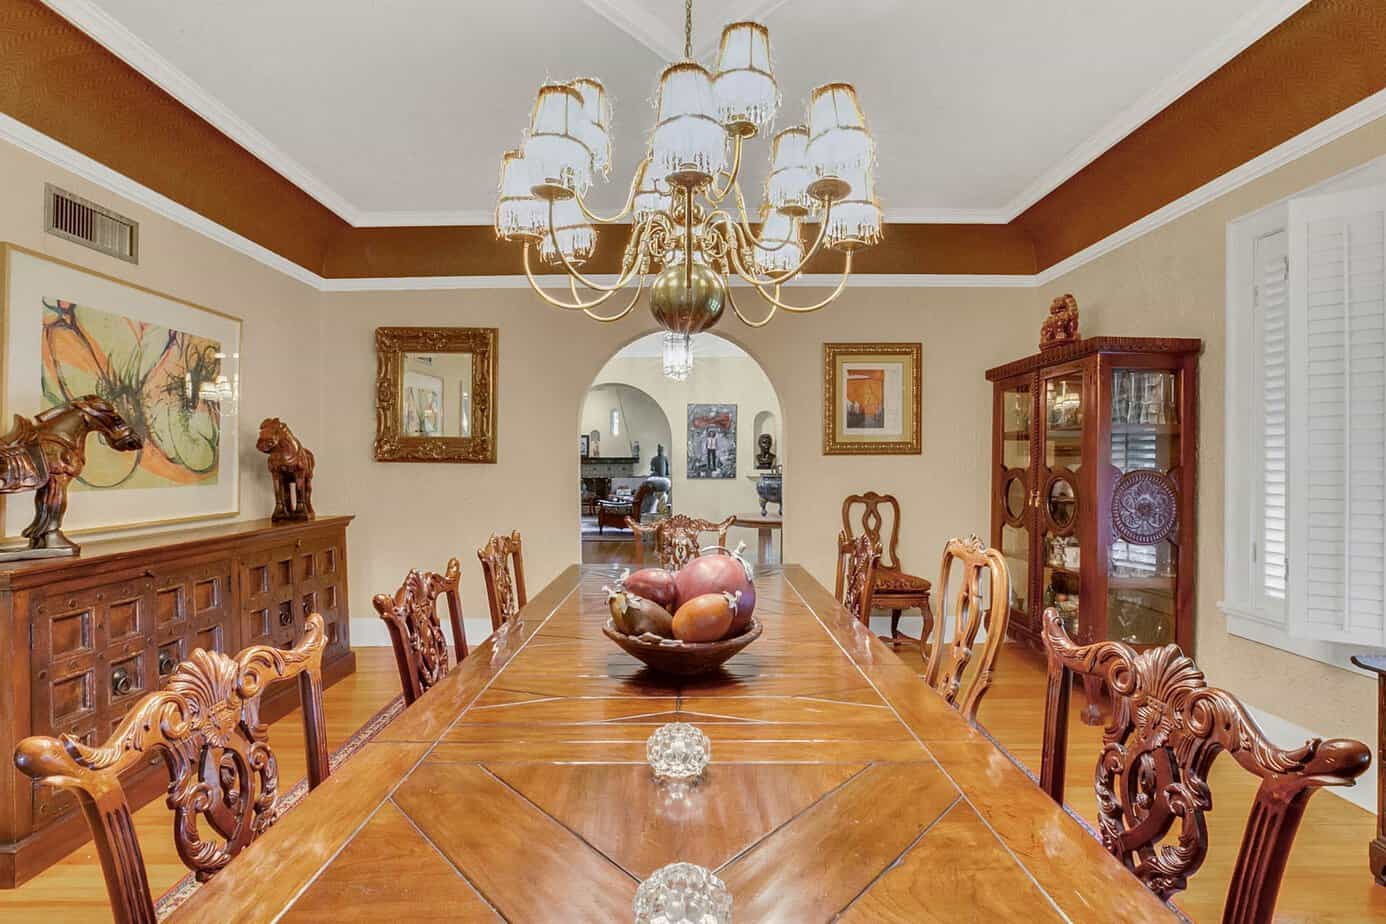 Formal 20 x 18 Dining Room With large dining table with that seats 10, wood floors, large window, and decorative light fixture for the home for sale at 4024 W Bay To Bay Tampa FL 33629